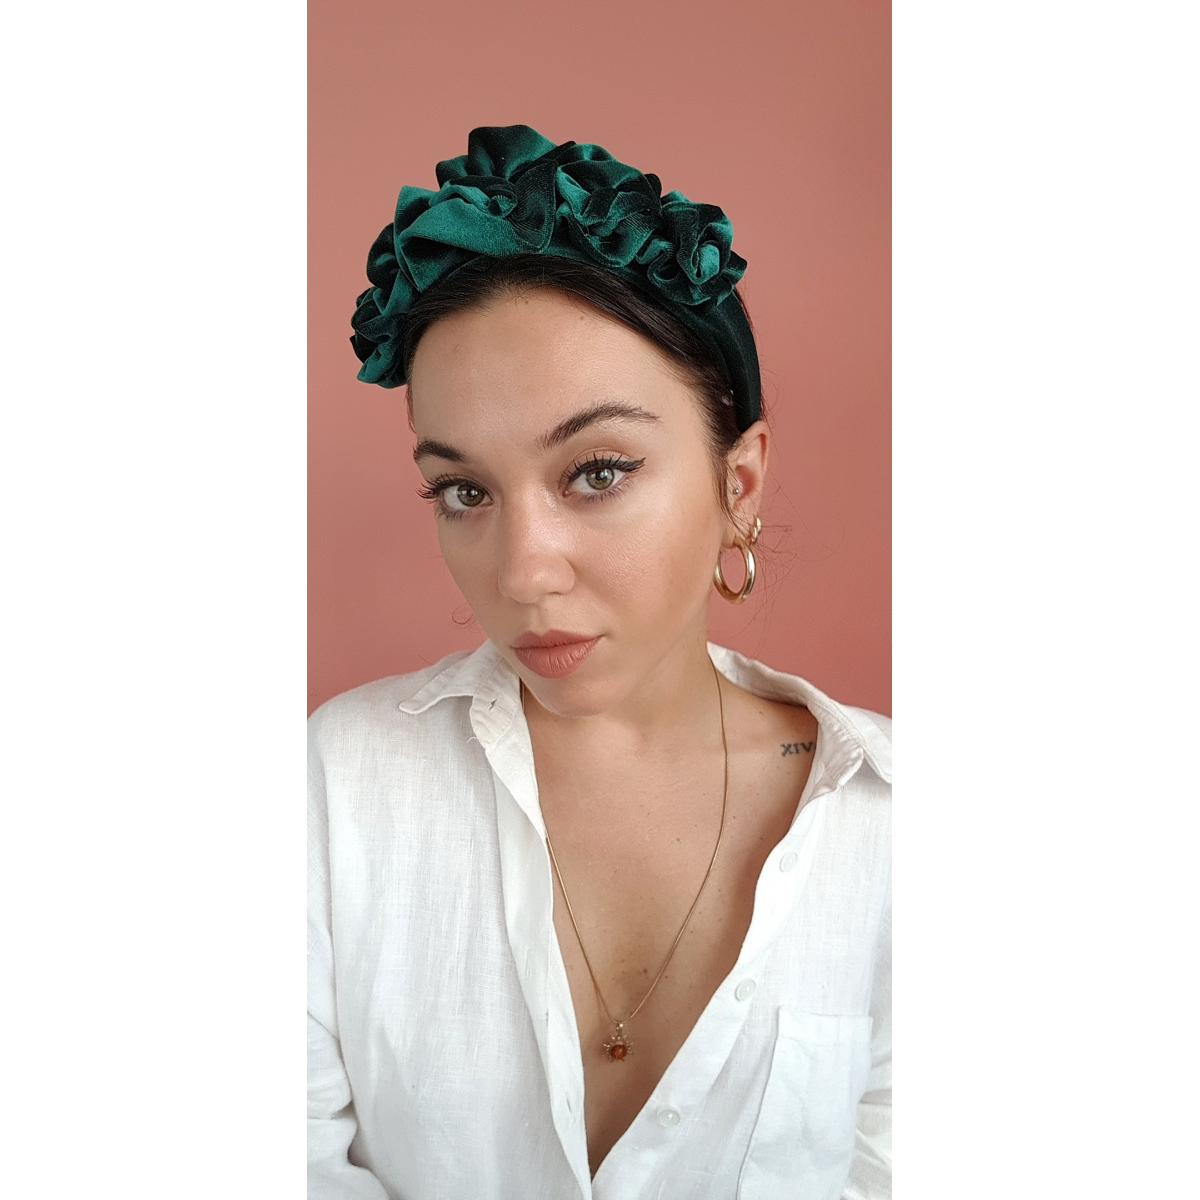 Velvet Headtrend in Green